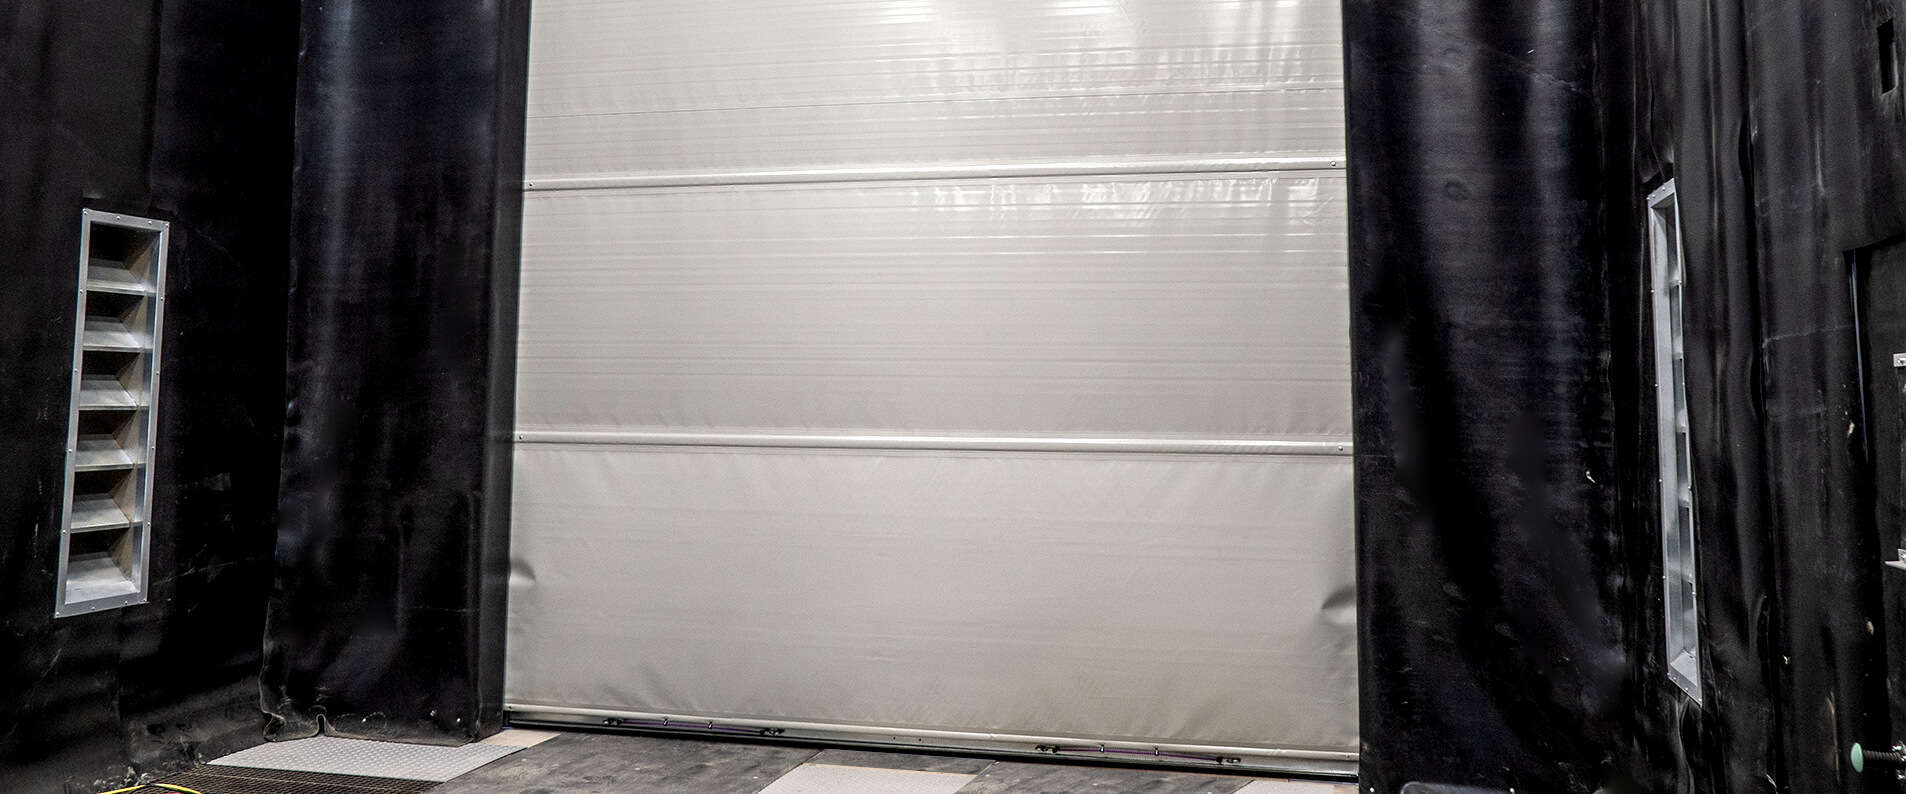 Blast room roller door inside closed